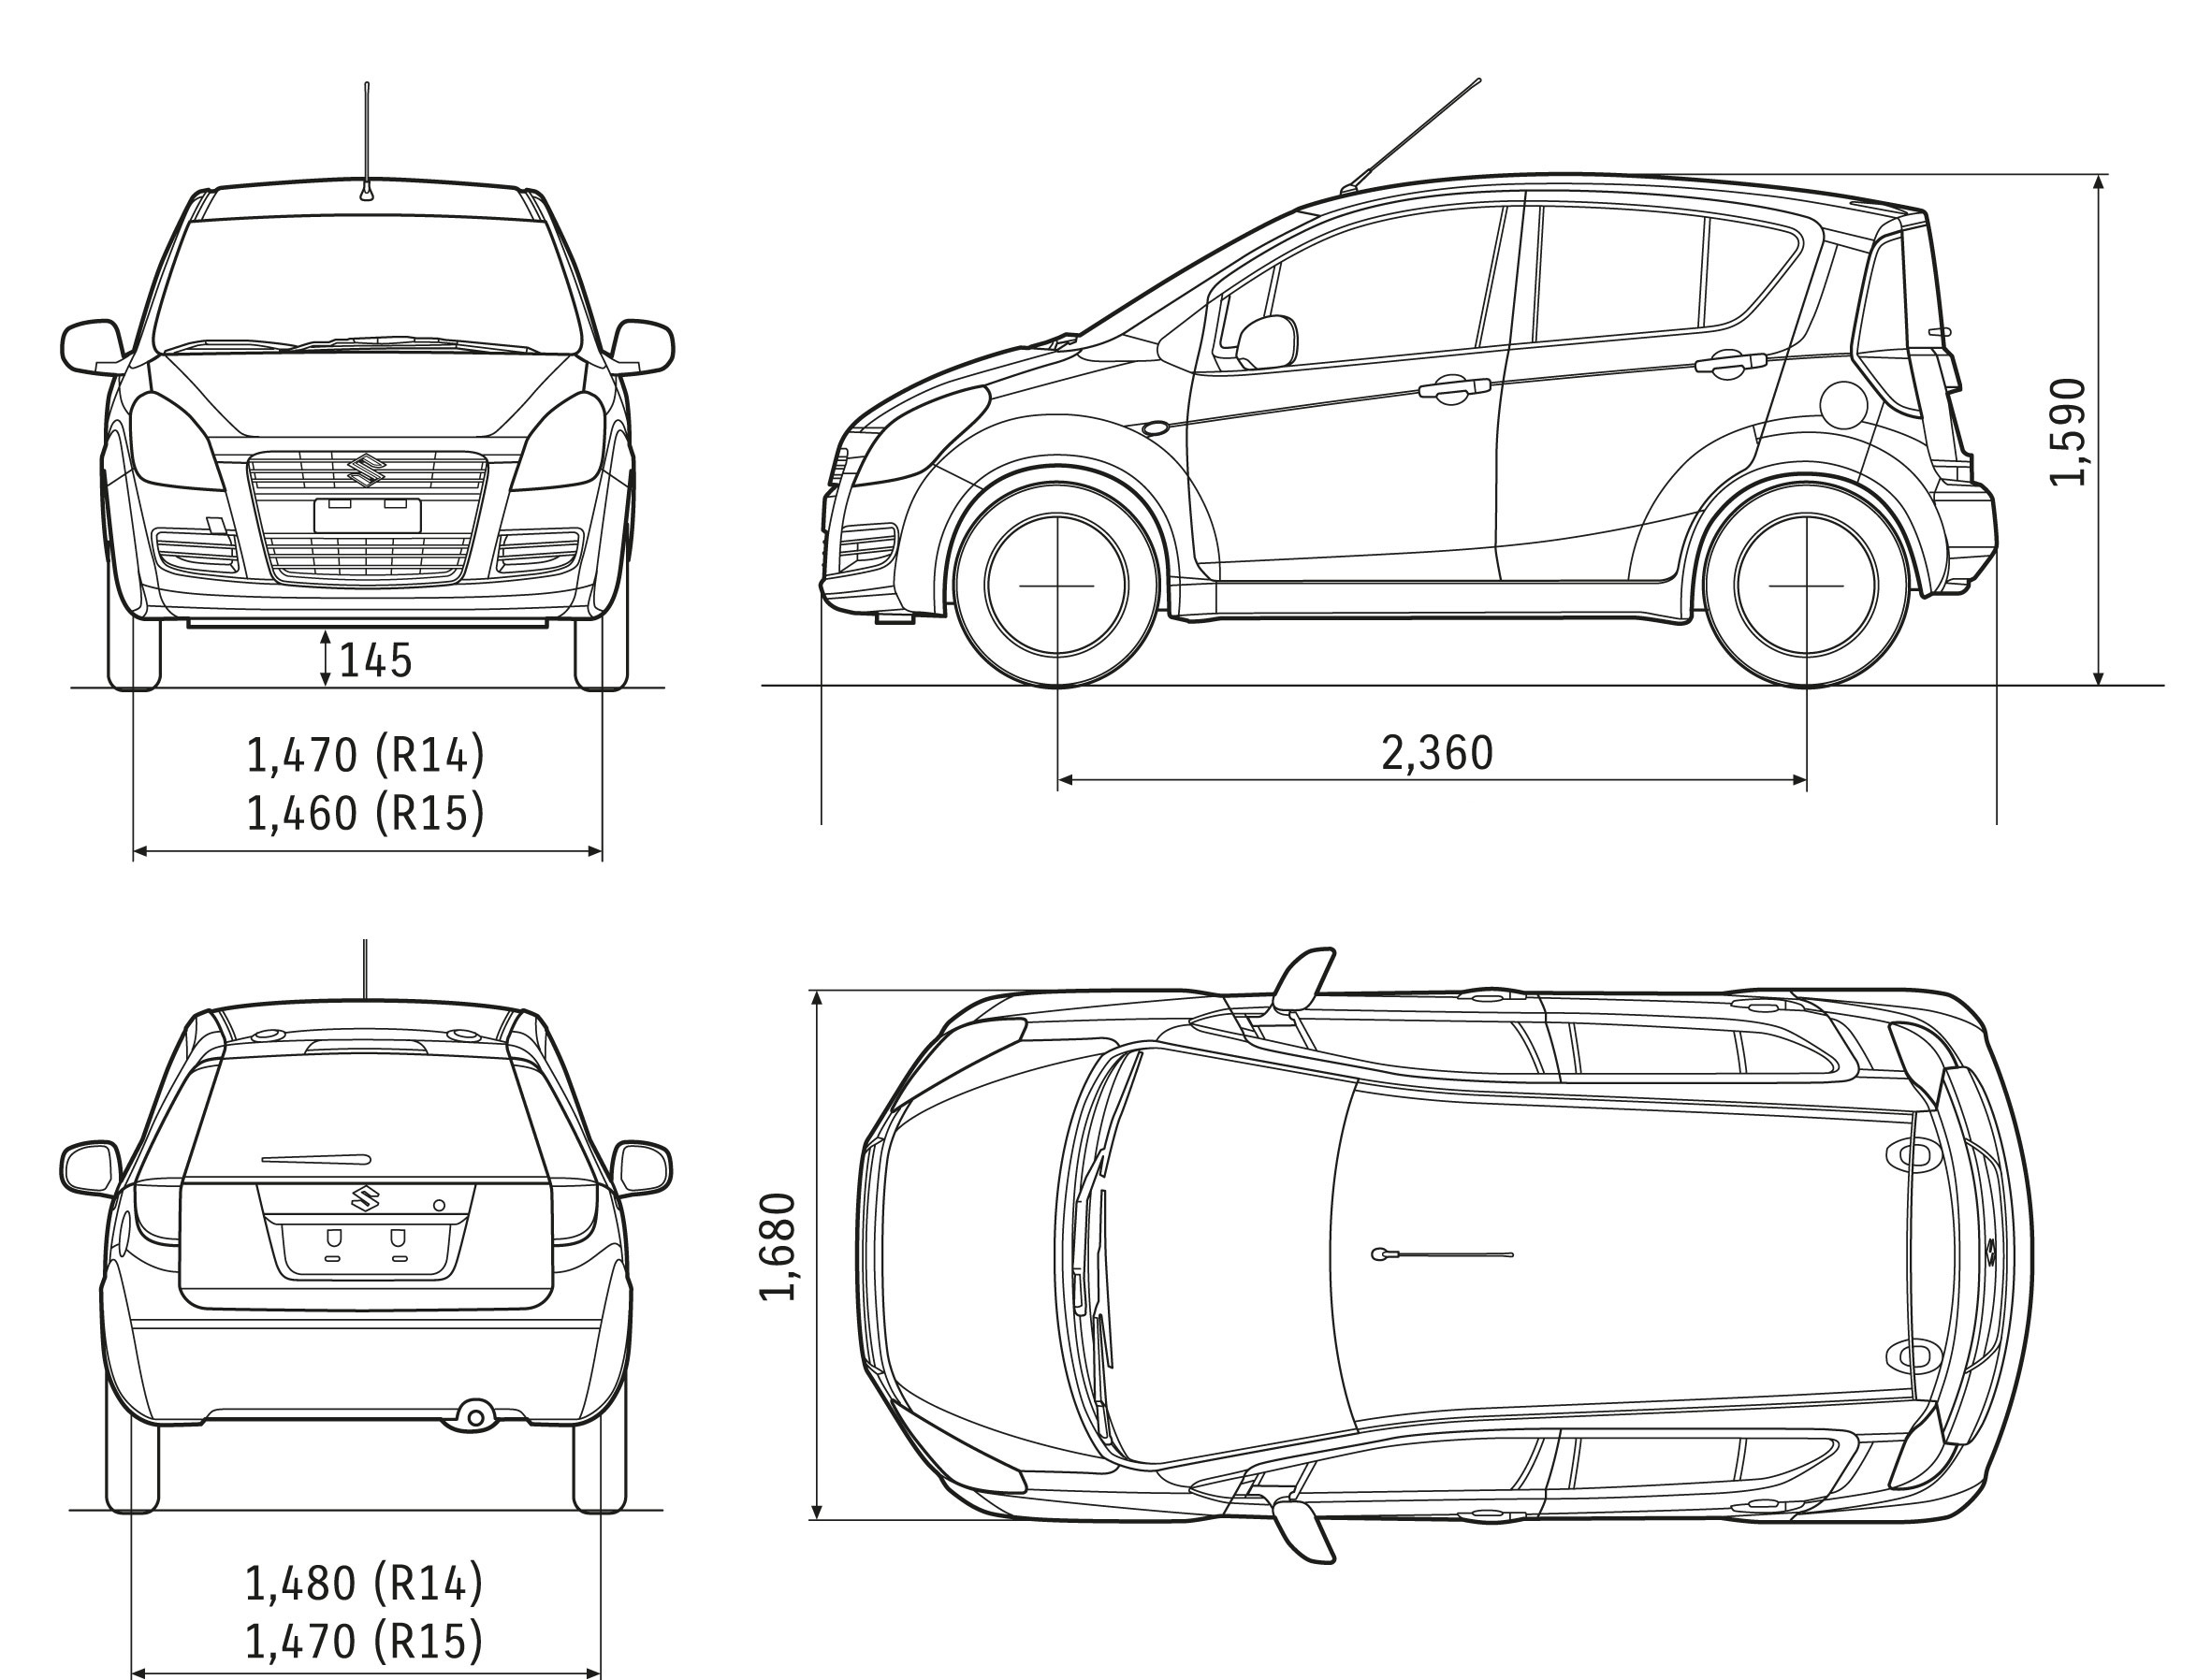 Suzuki Splash blueprint